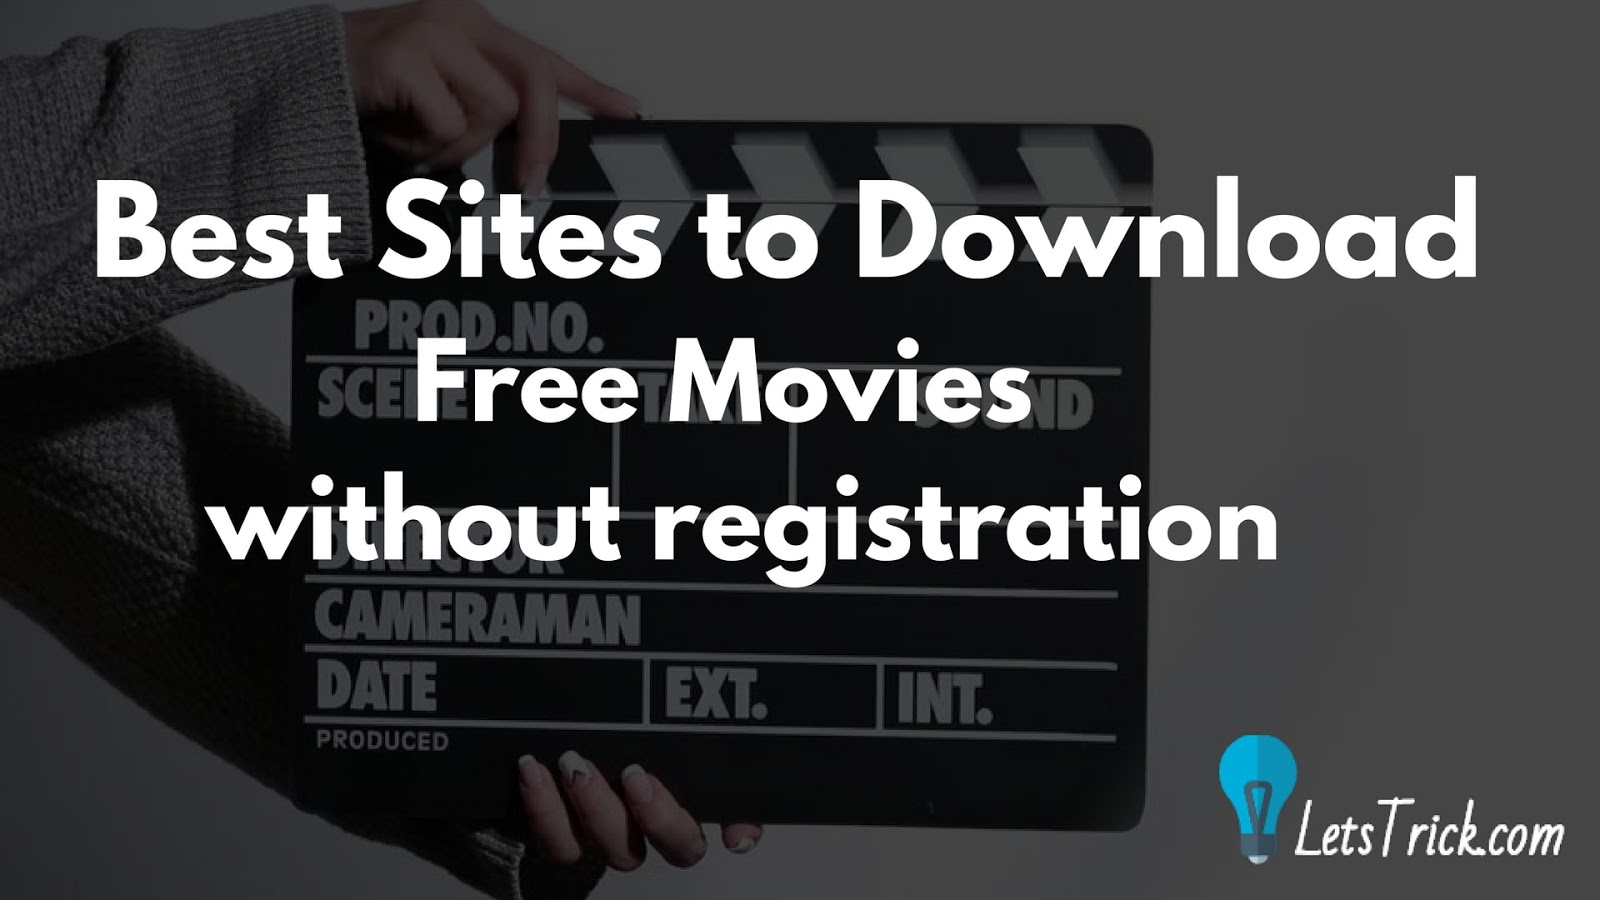 Top 10 Websites to Watch Movies and TV Shows Legally for Free